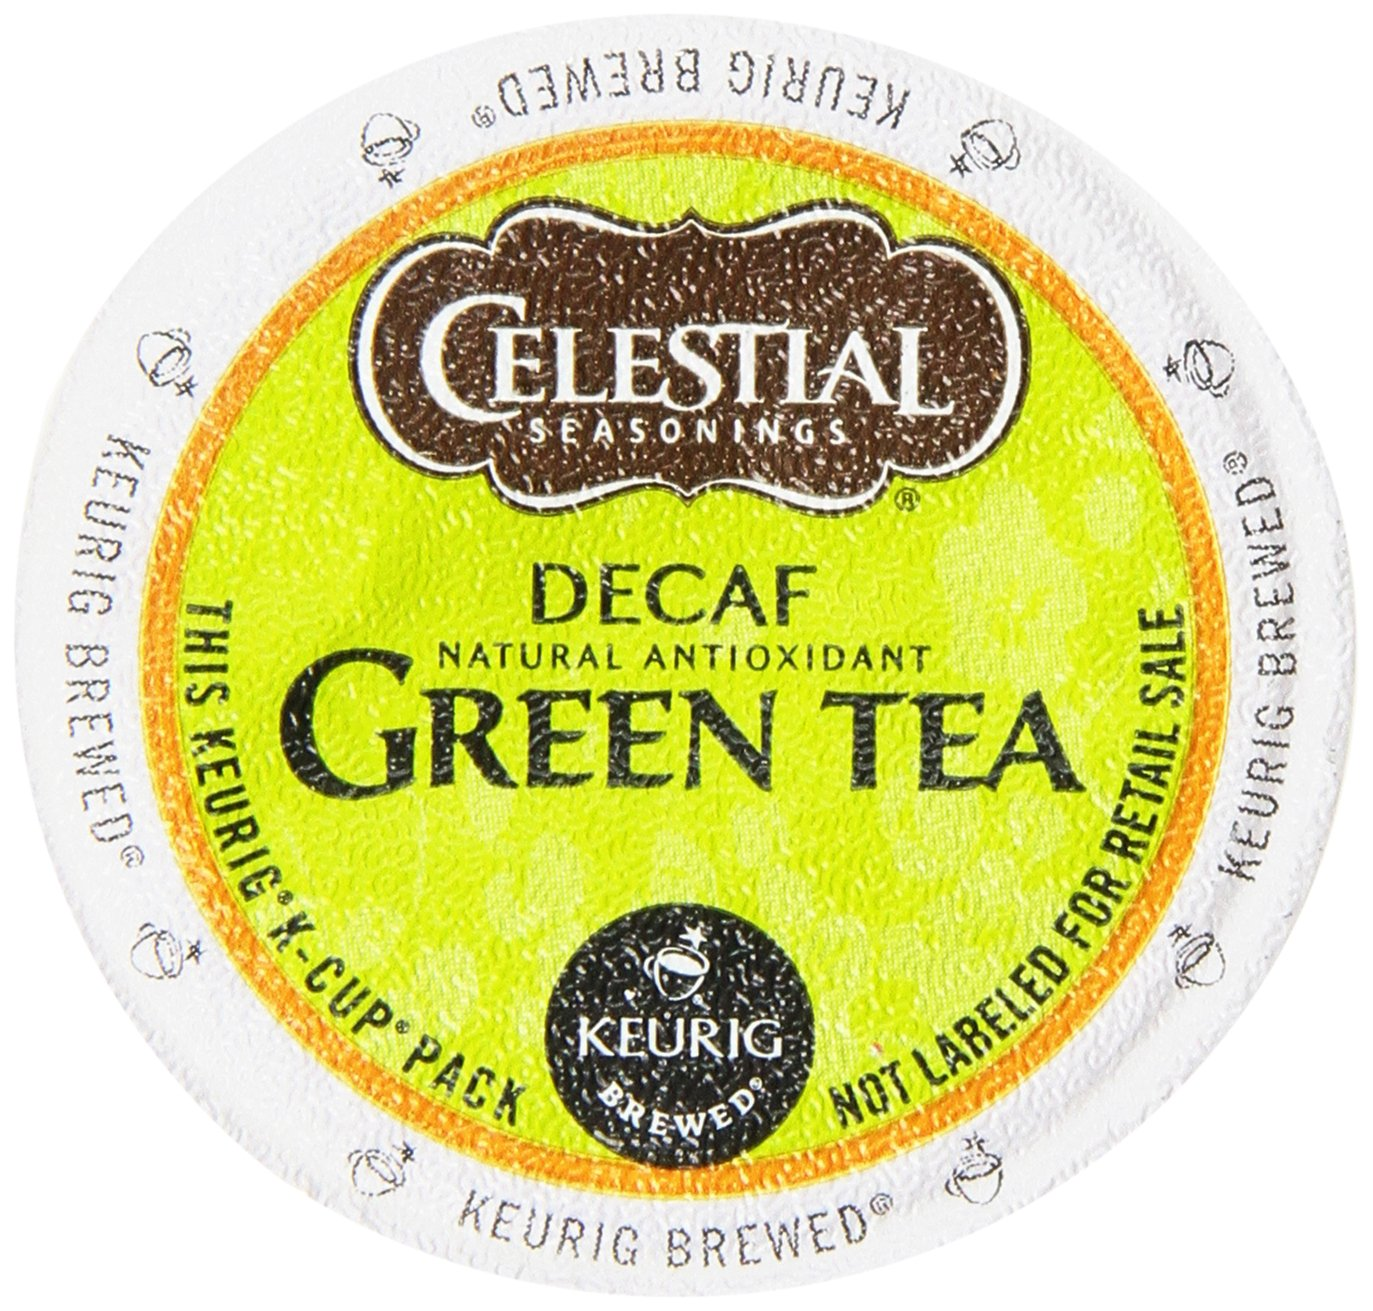 Celestial Seasonings Decaffeinated Green Tea K-Cups For Keurig Brewers, 24 Count (Pack of 4) by Celestial Seasonings